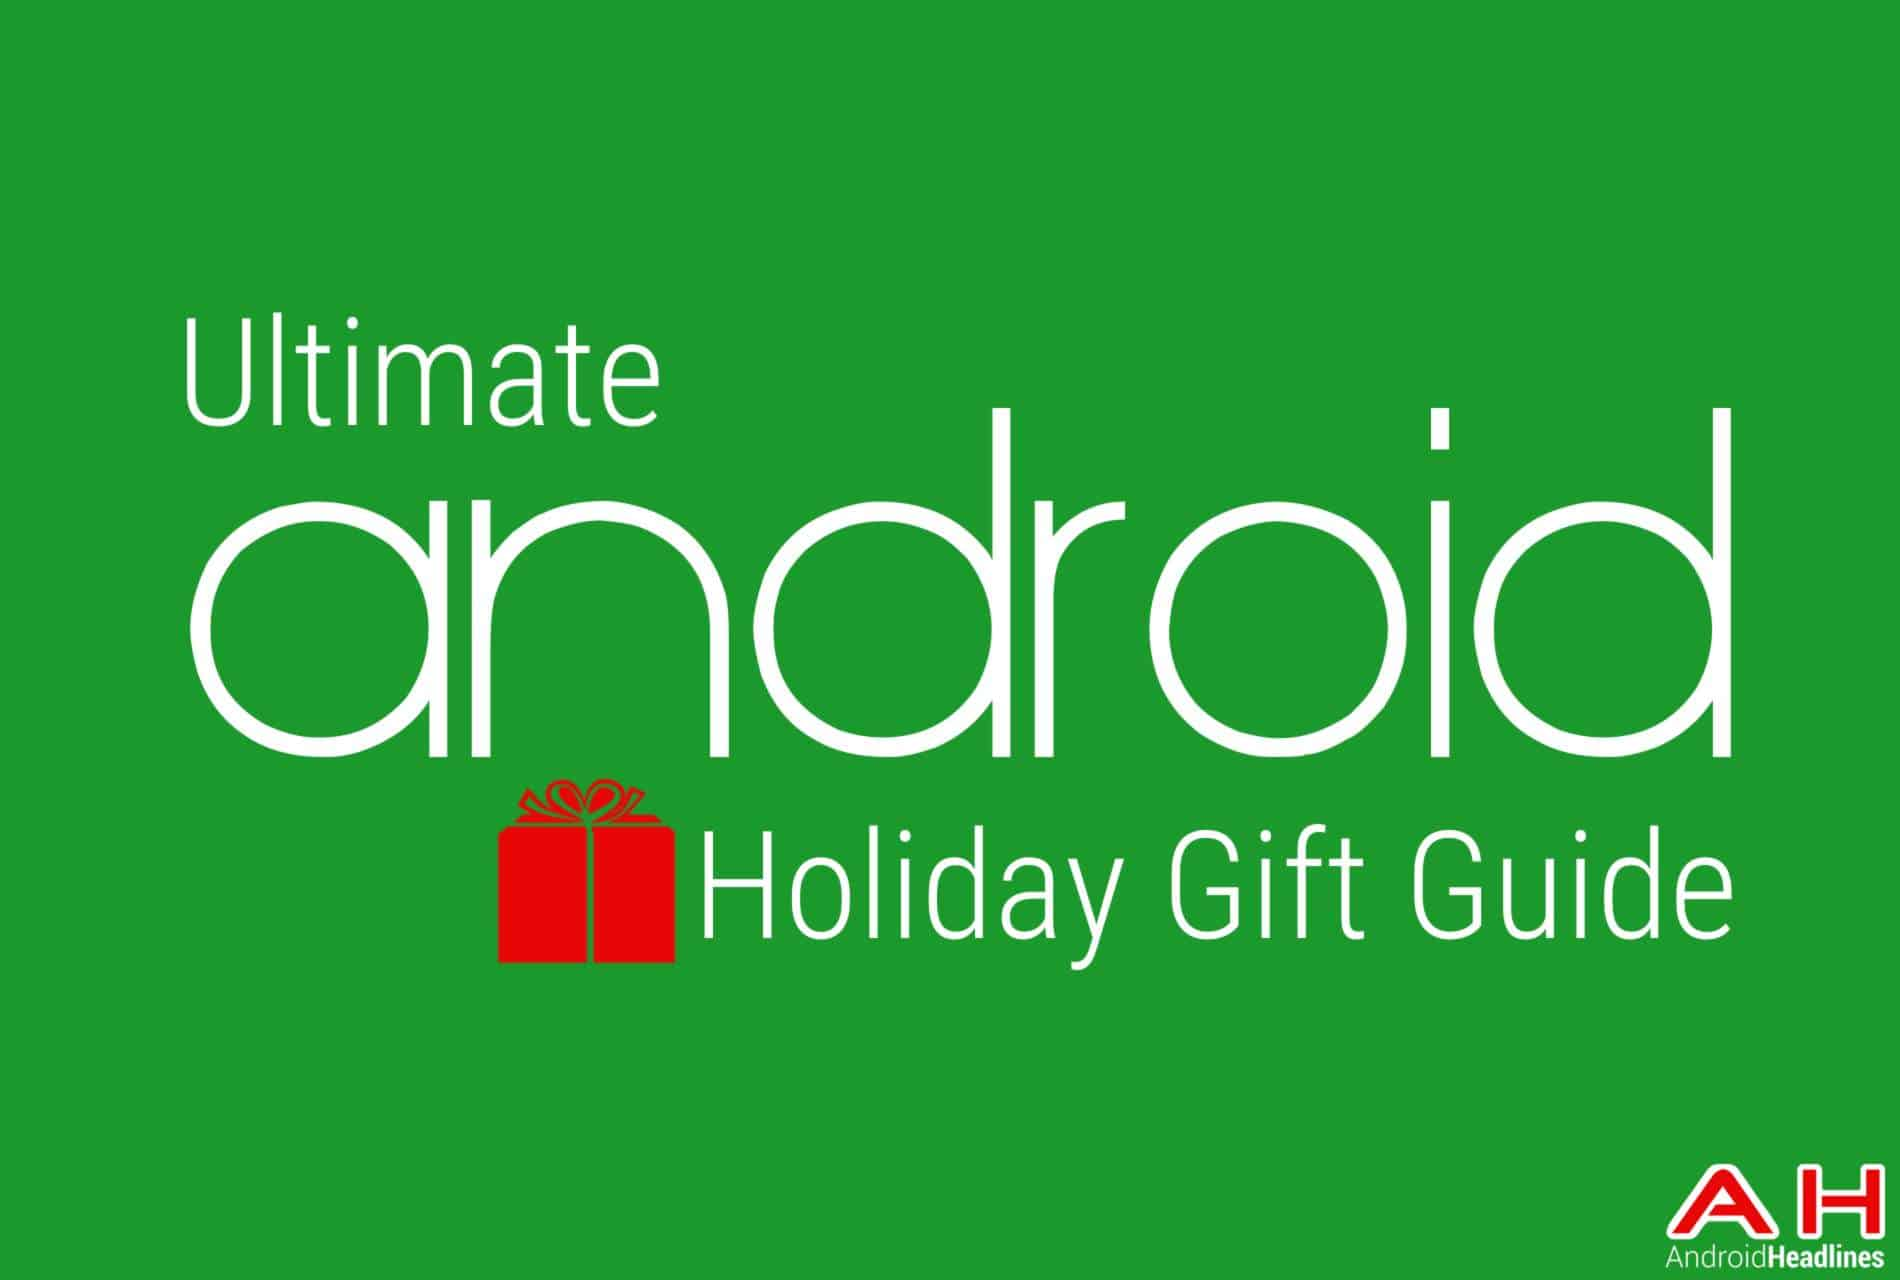 The Ultimate Android Gift Guide 2014-2015